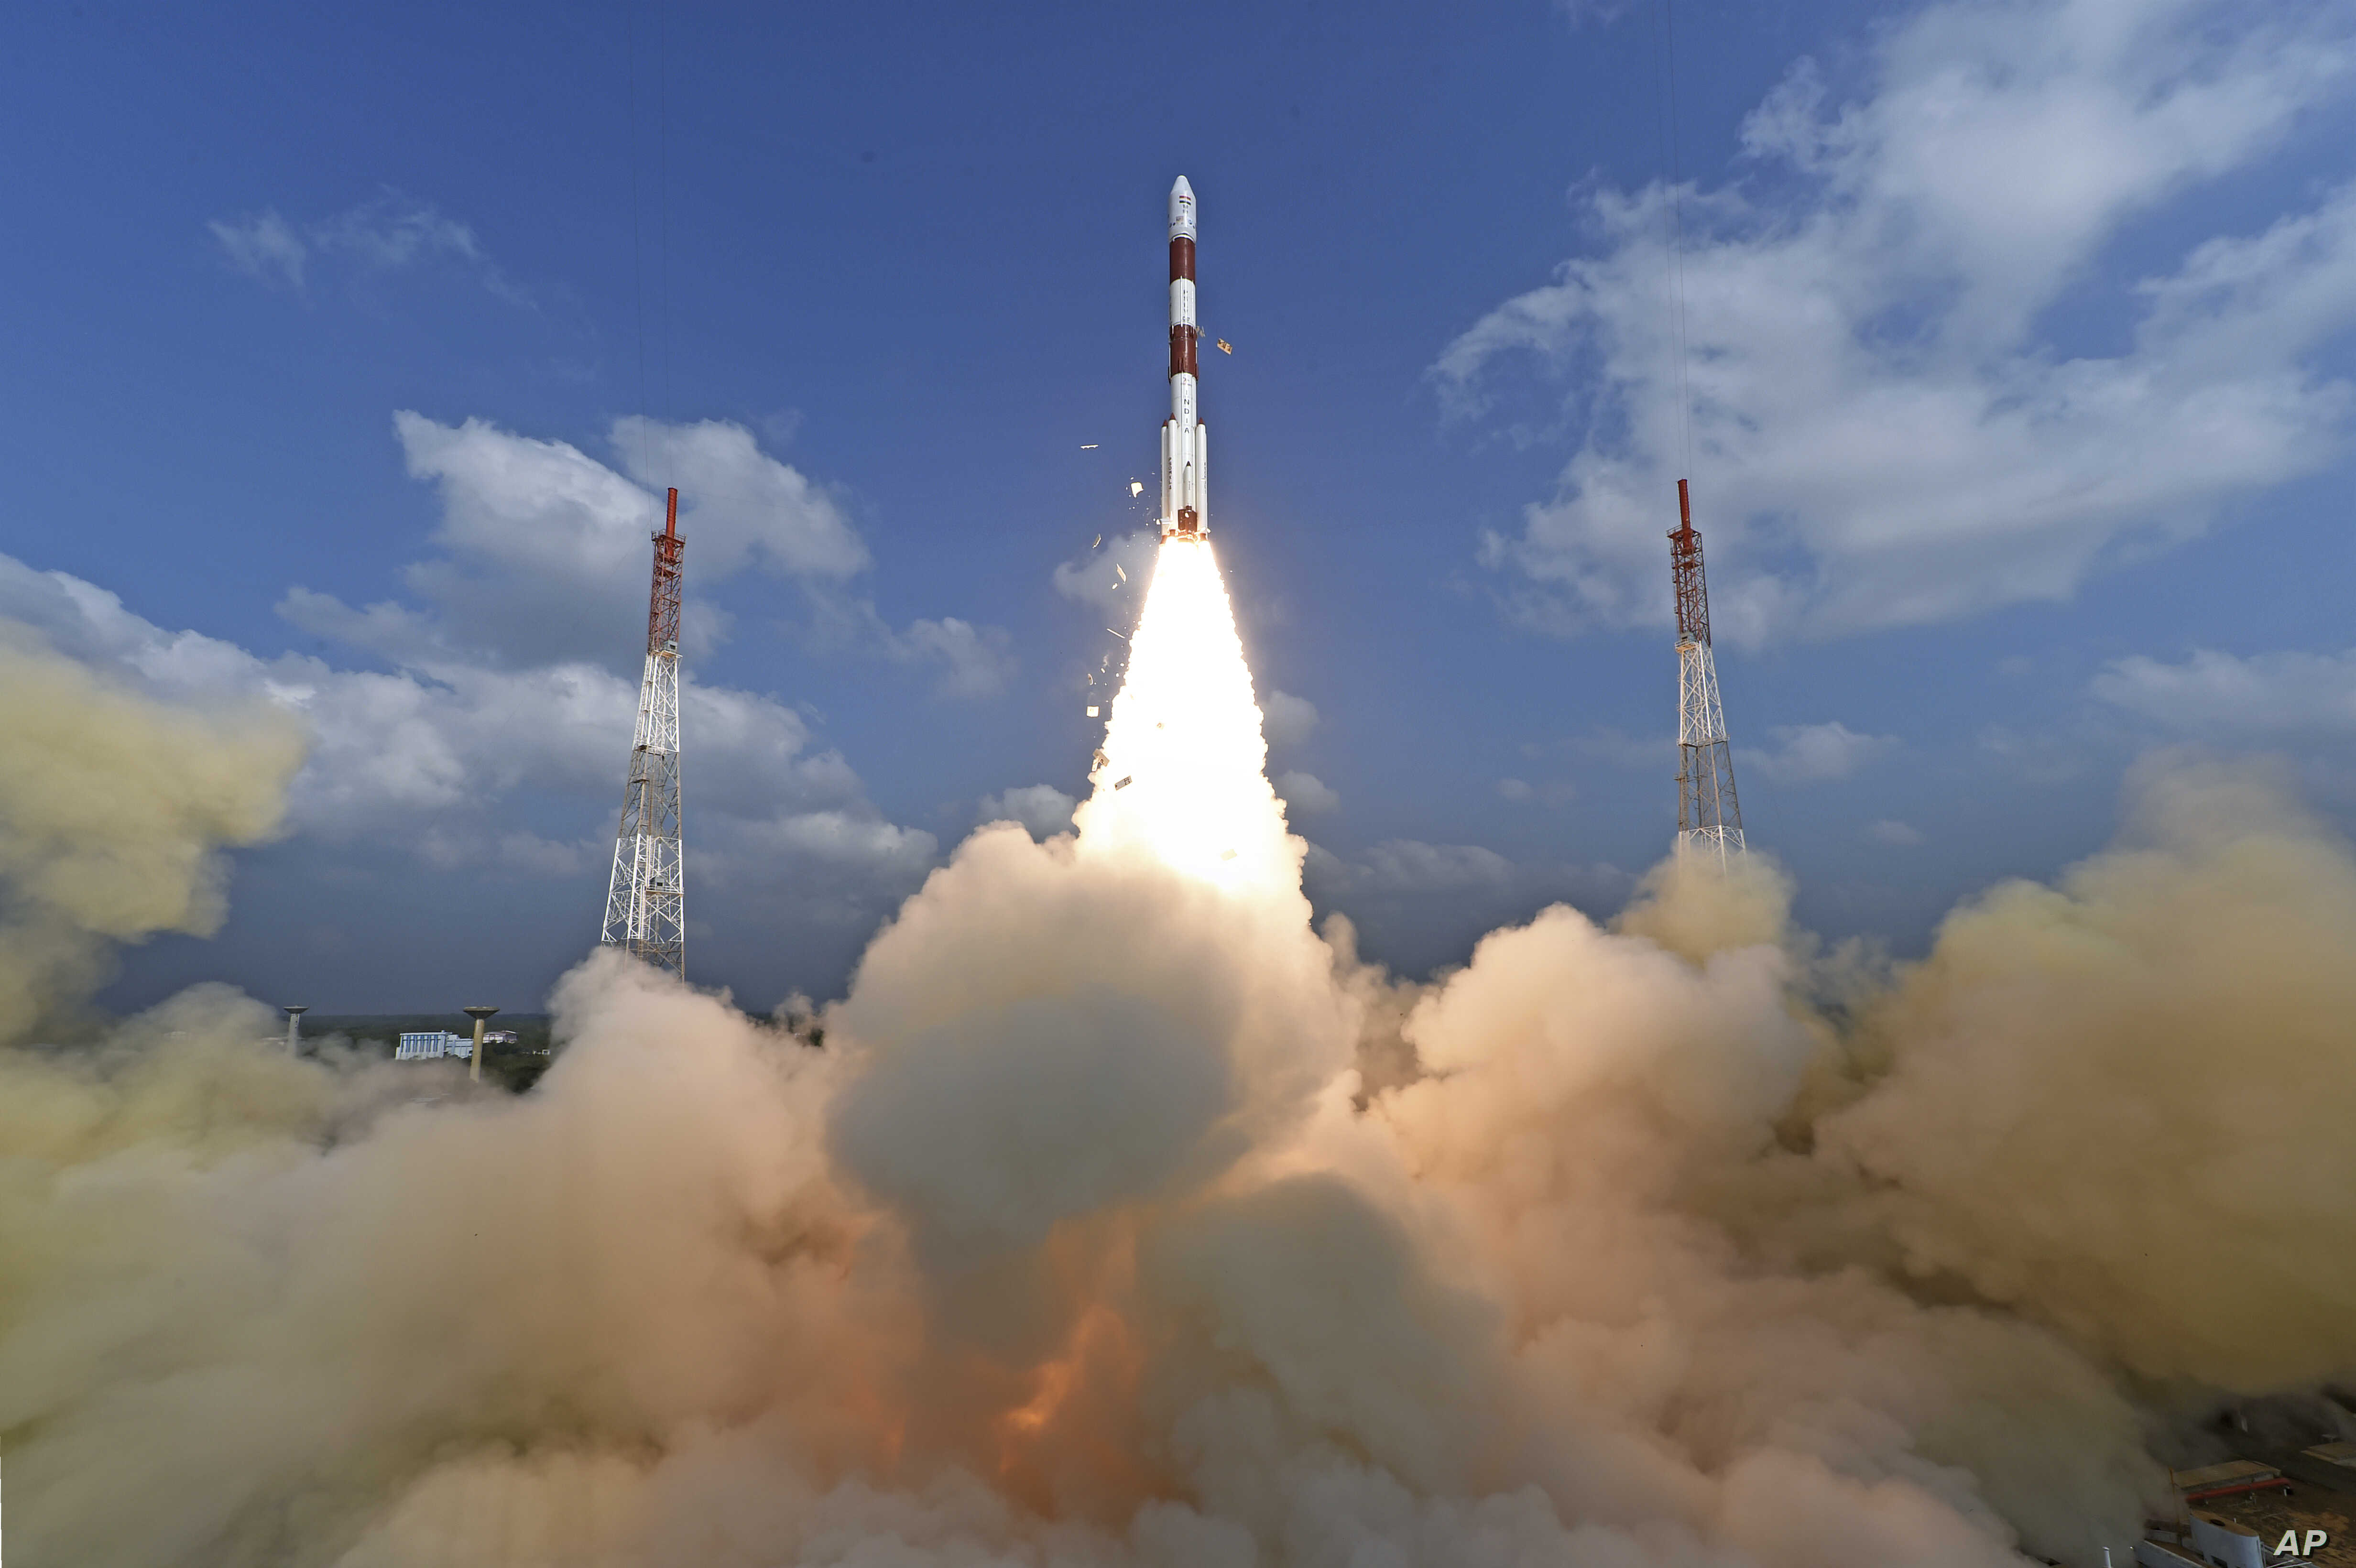 This photograph released by Indian Space Research Organization shows its polar satellite launch vehicle lifting off from a launch pad at the Satish Dhawan Space Centre in Sriharikota, India, Feb.15, 2017.